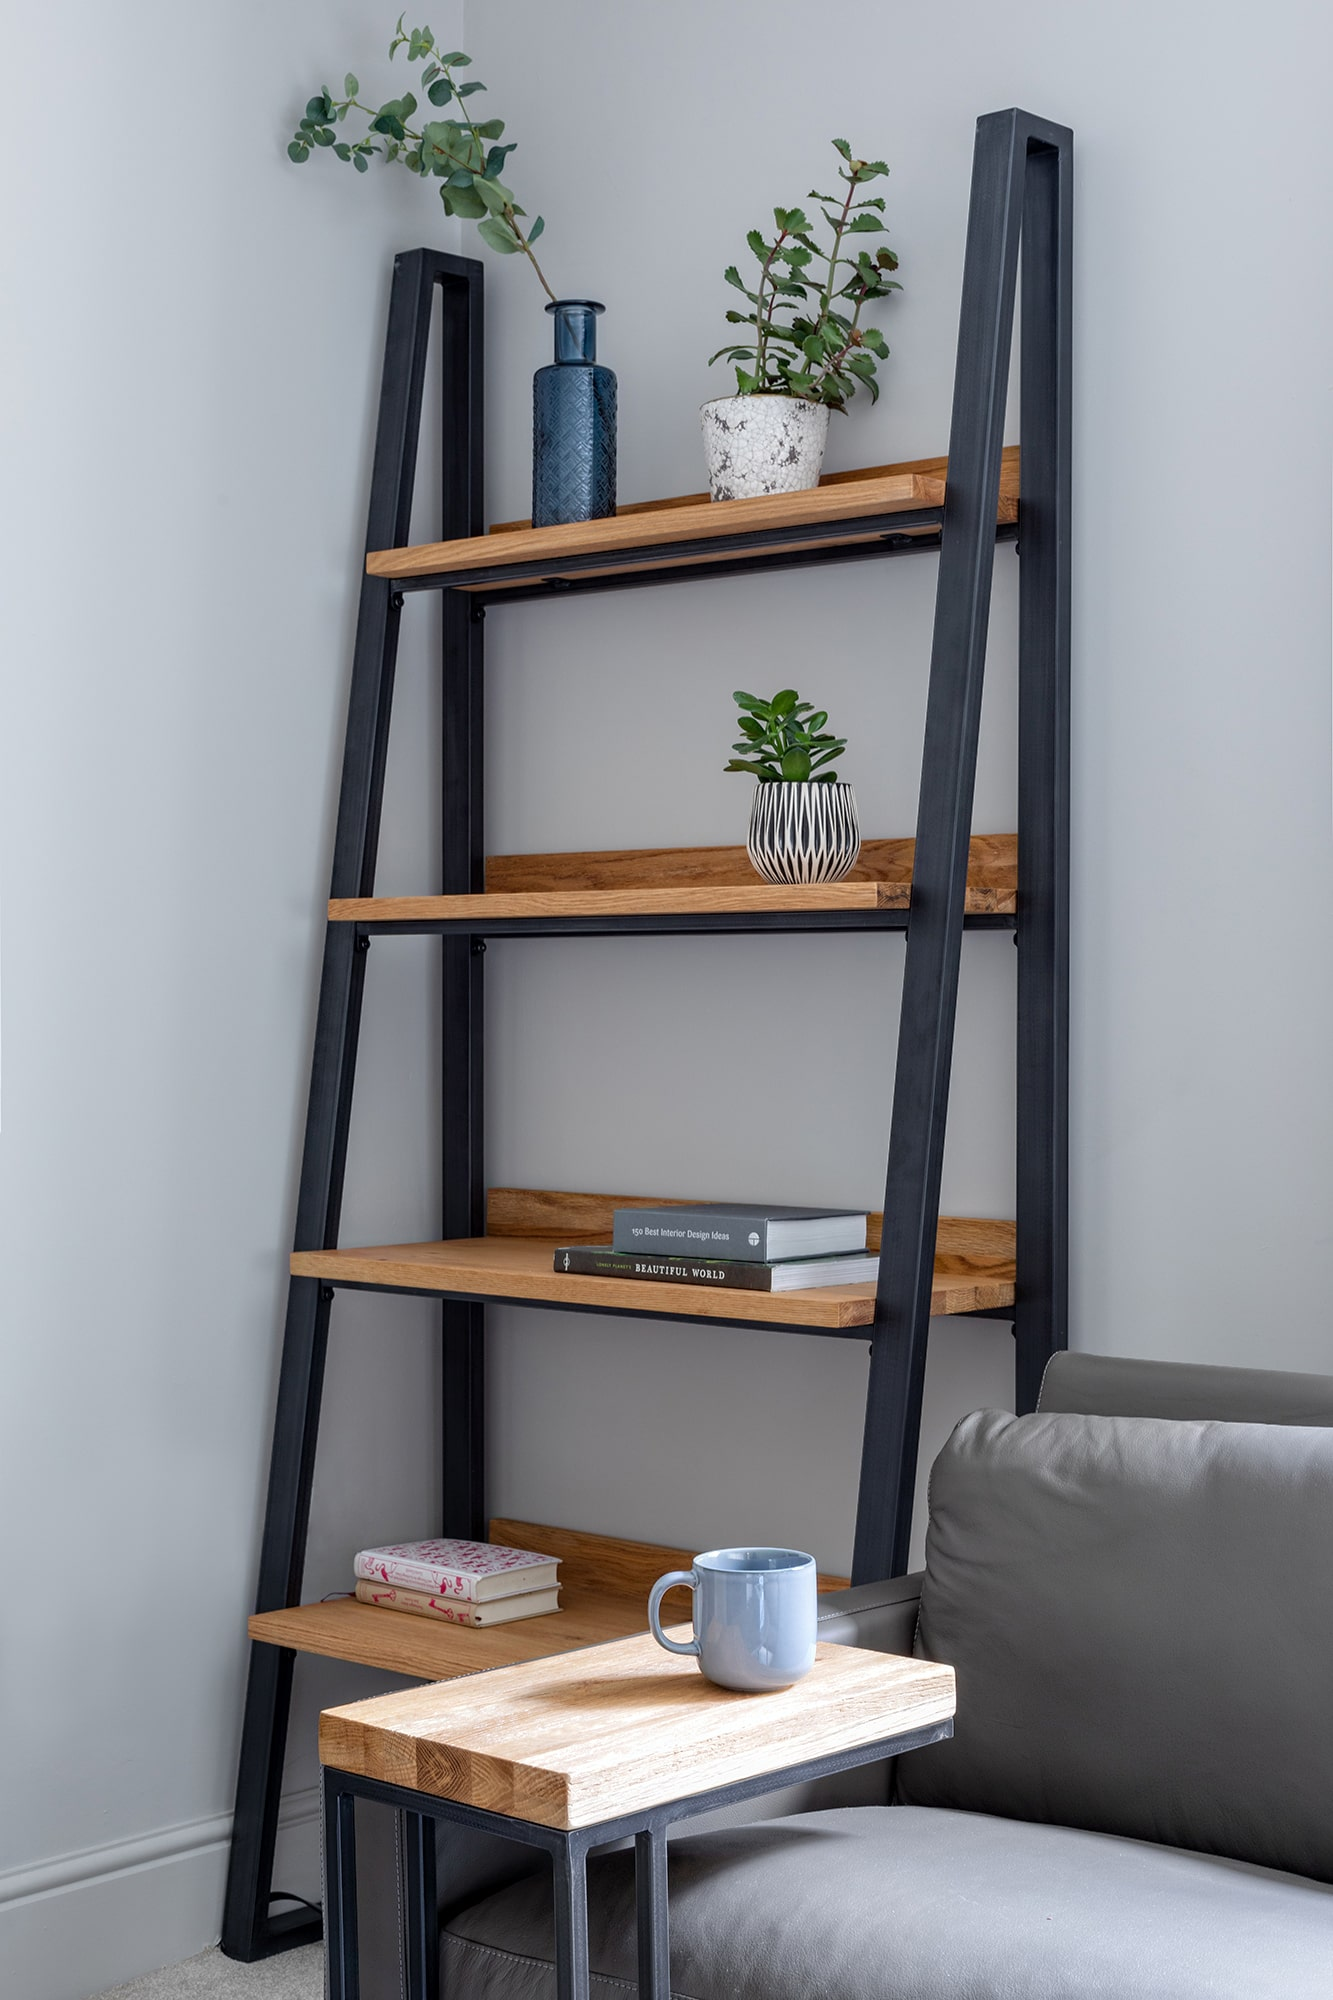 interior detail photo: living room, ladder shelving unit with decor accessories, corner of a sofa